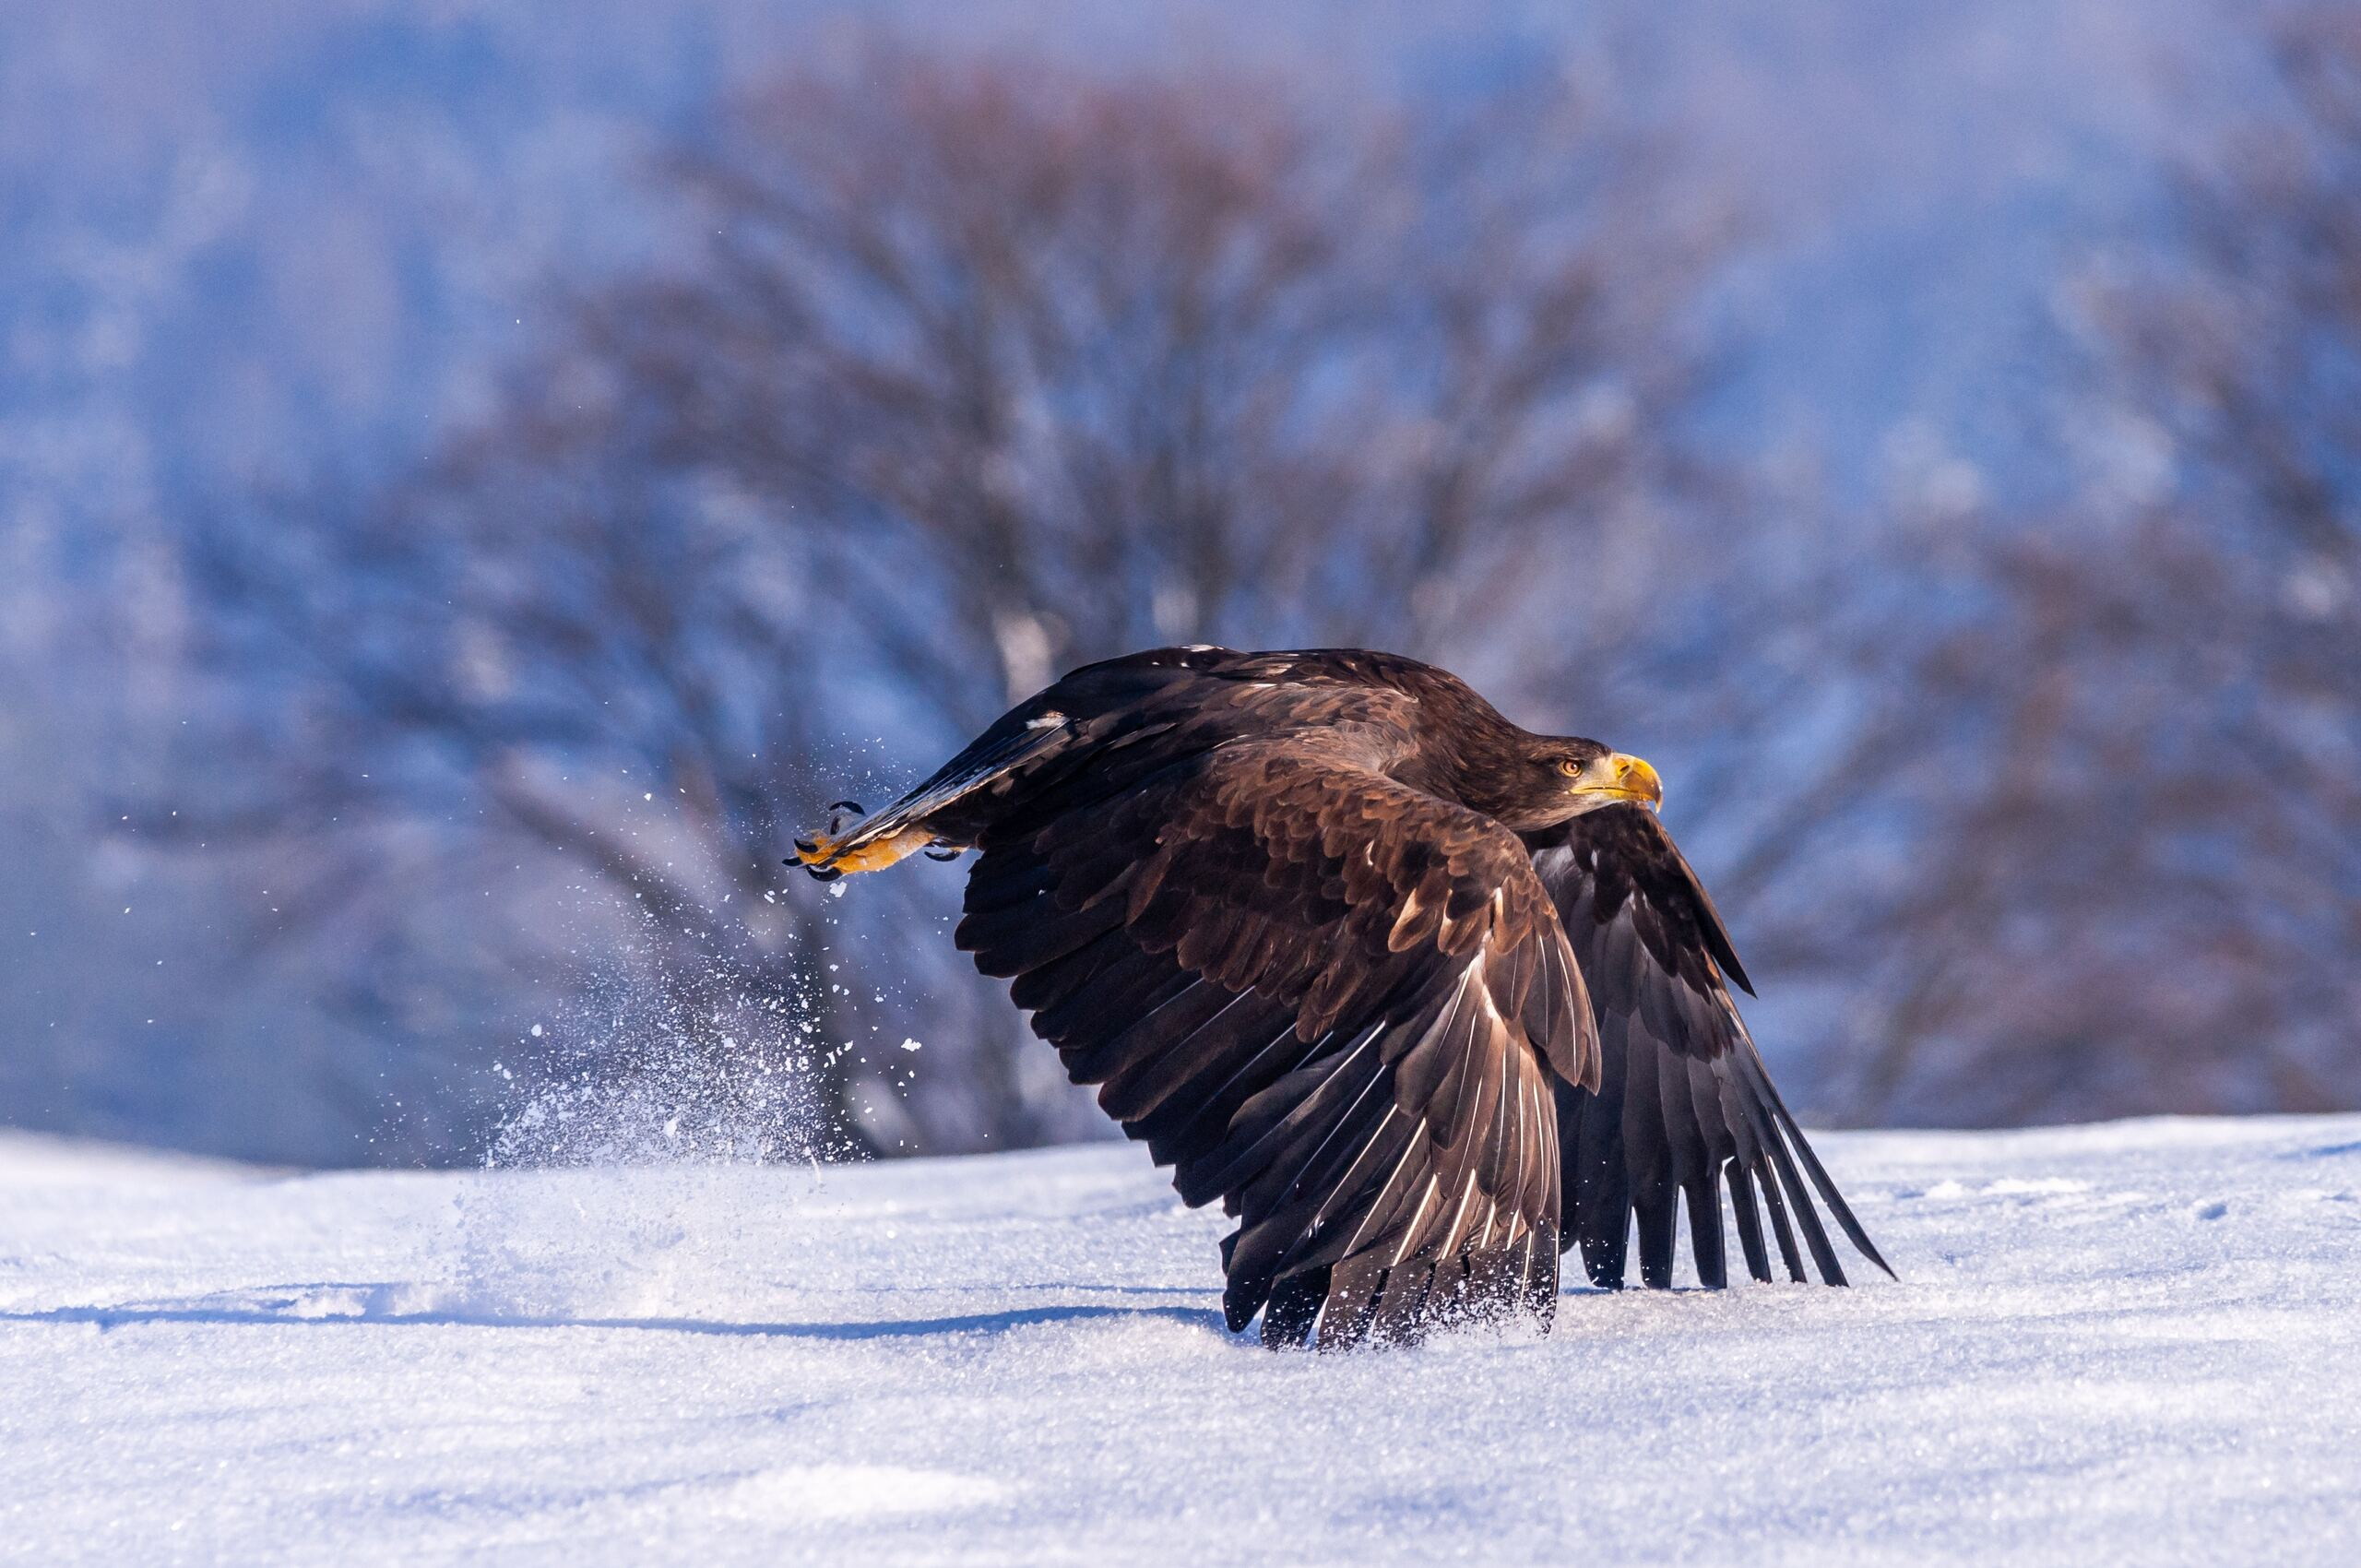 eagle-in-snow-4k-6u.jpg